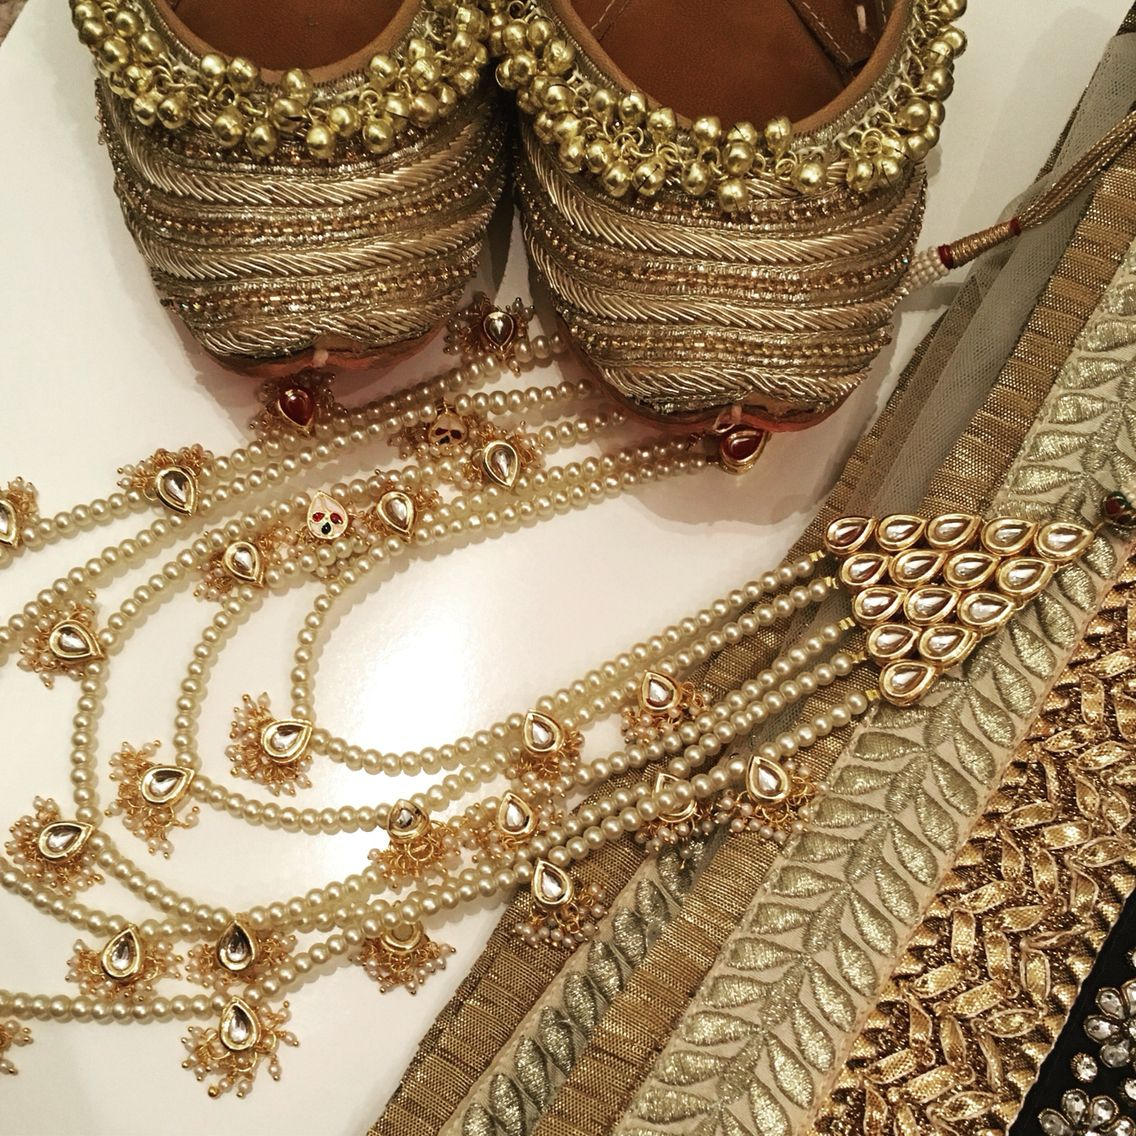 Gold rani haar pictures to pin on pinterest - Gold Accessories By Tyche London Punjabi Juttis And Long Rani Haar Pearl And